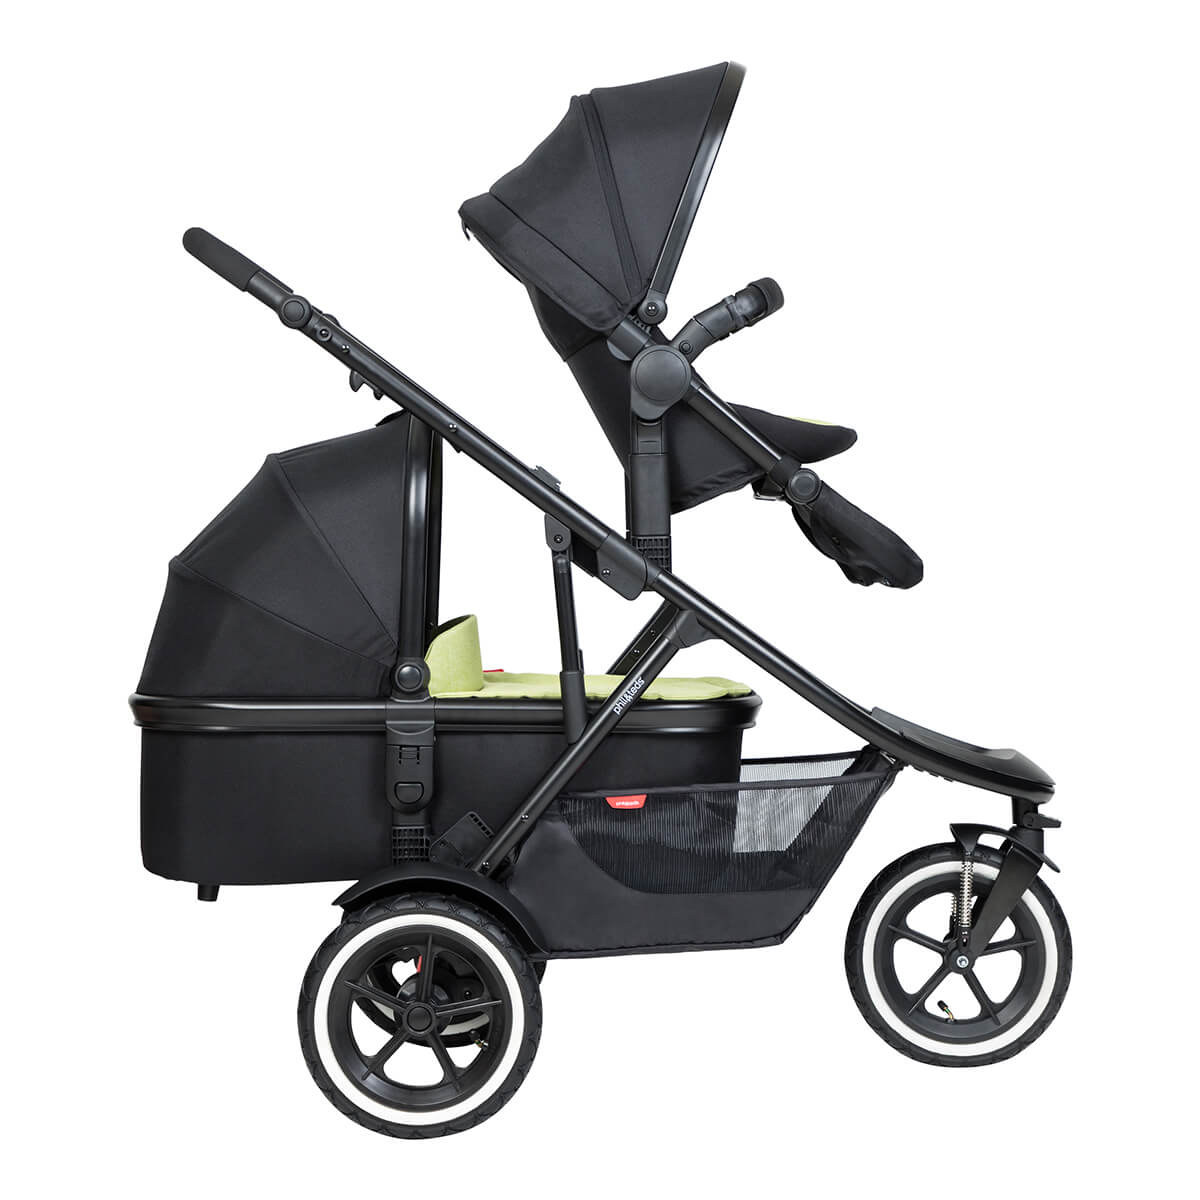 https://cdn.accentuate.io/4509528588376/19272668282968/philteds-sport-poussette-with-double-kit-extended-clip-and-snug-carrycot-side-view-v1626484500373.jpg?1200x1200